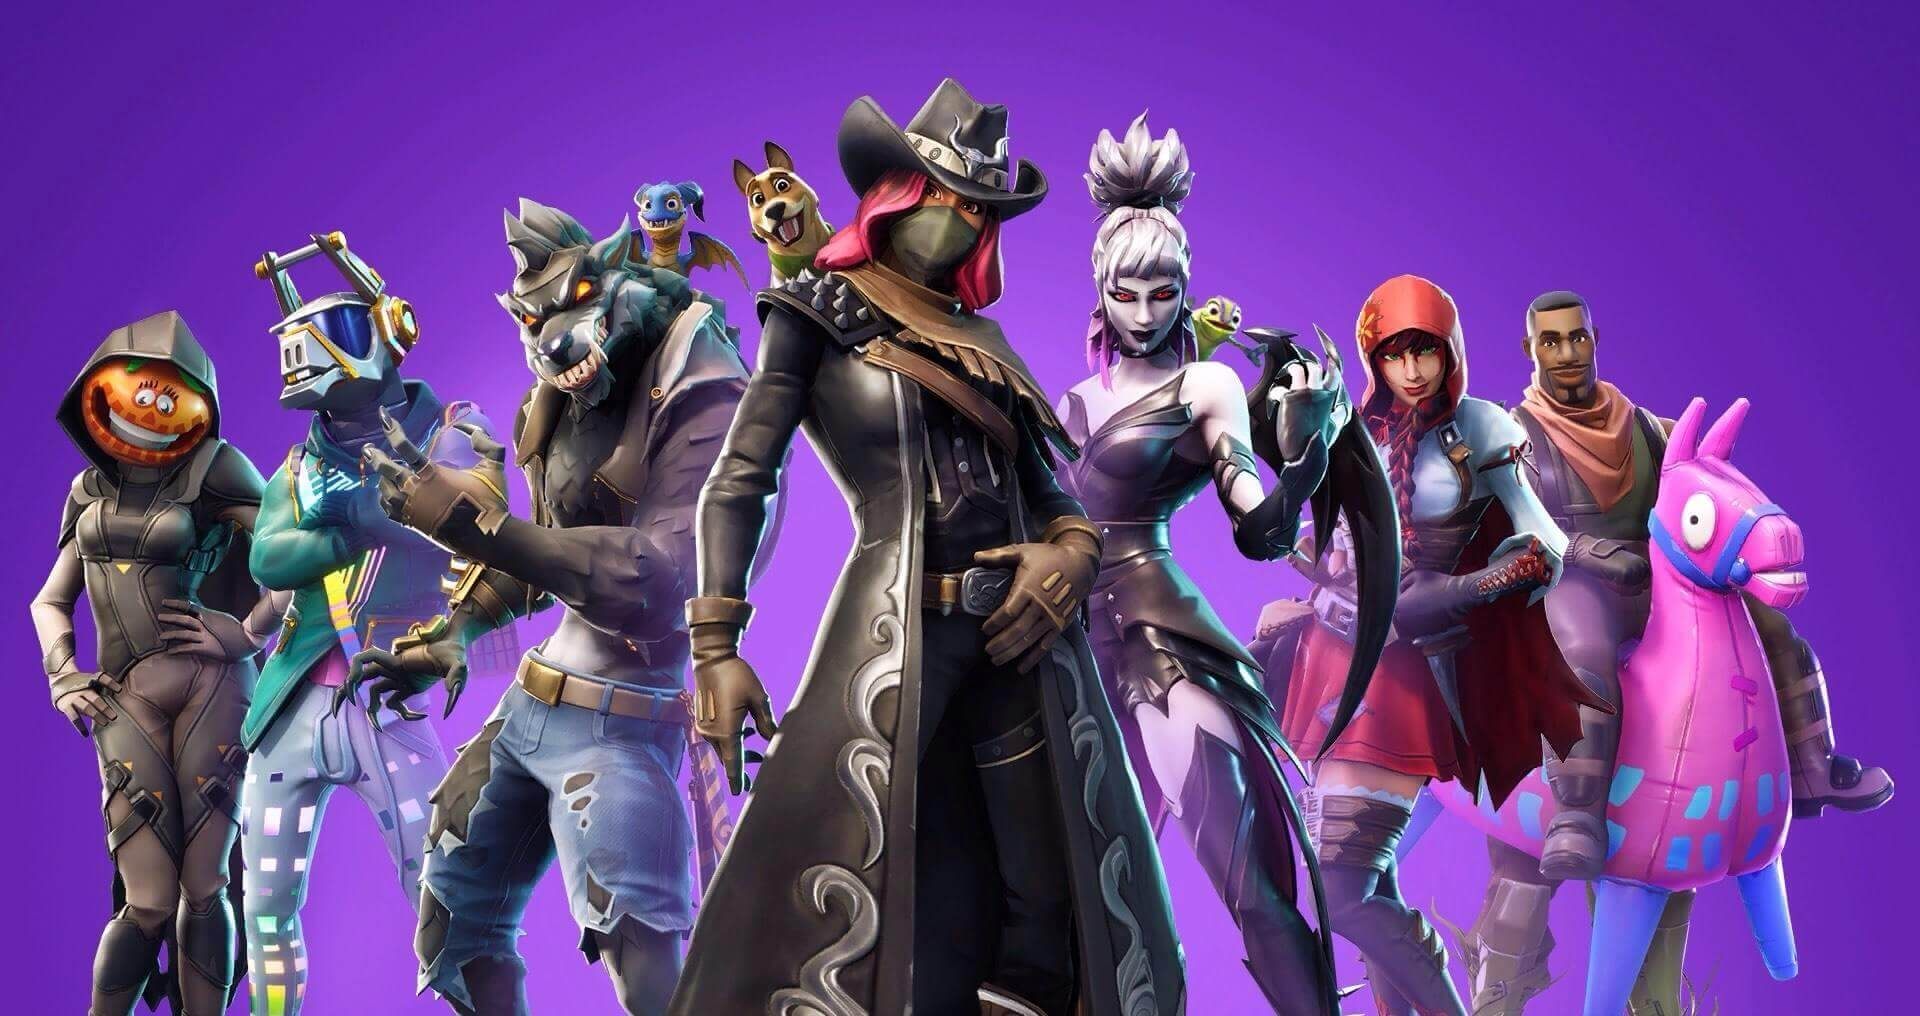 Fortnite Skins and Character Outfits